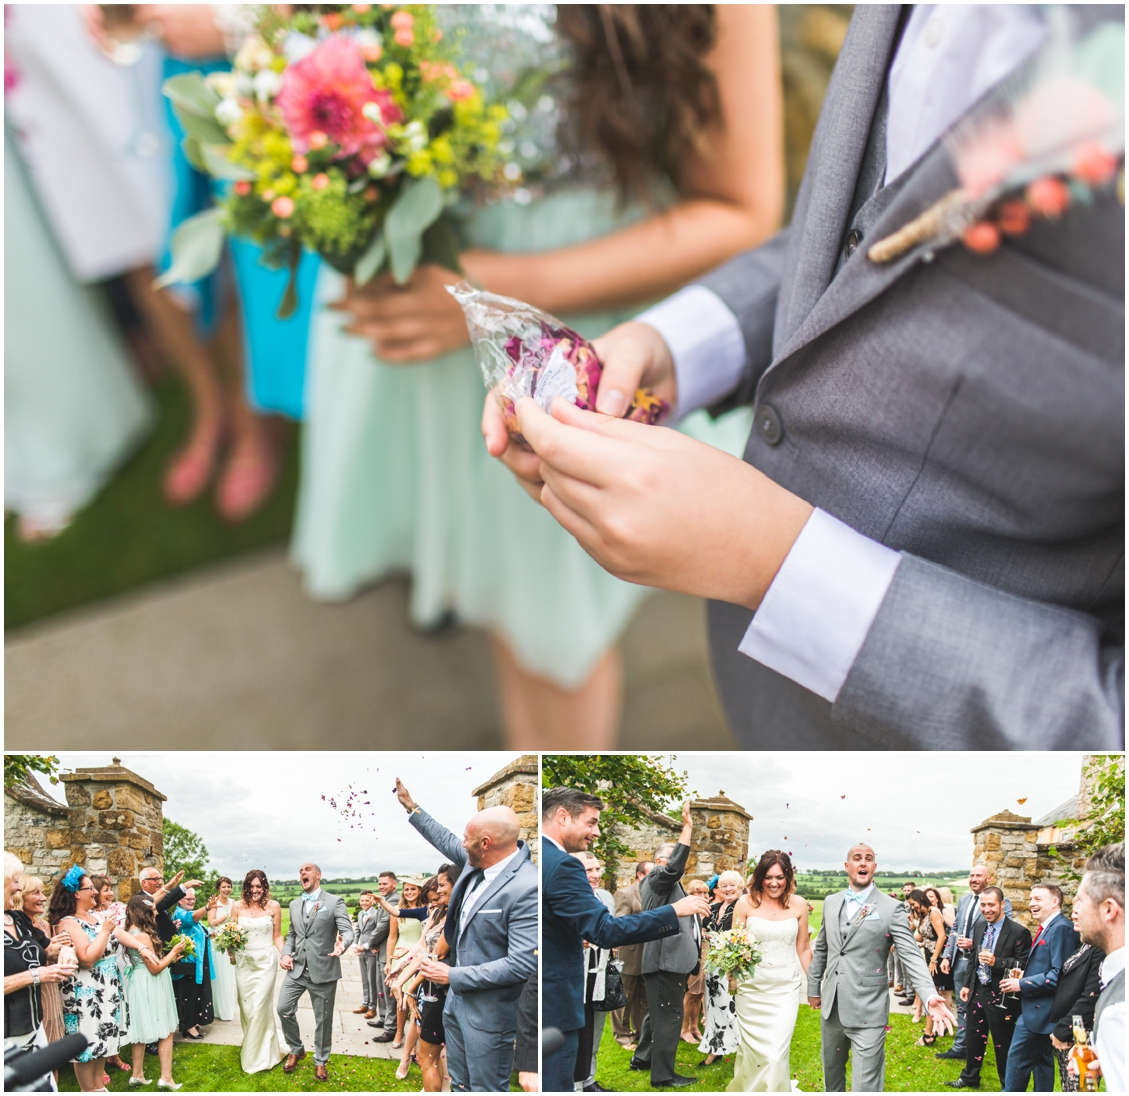 Axnoller House Beautiful Summer Wedding Photography in Dorset by Lisa Carpenter Photography, photos